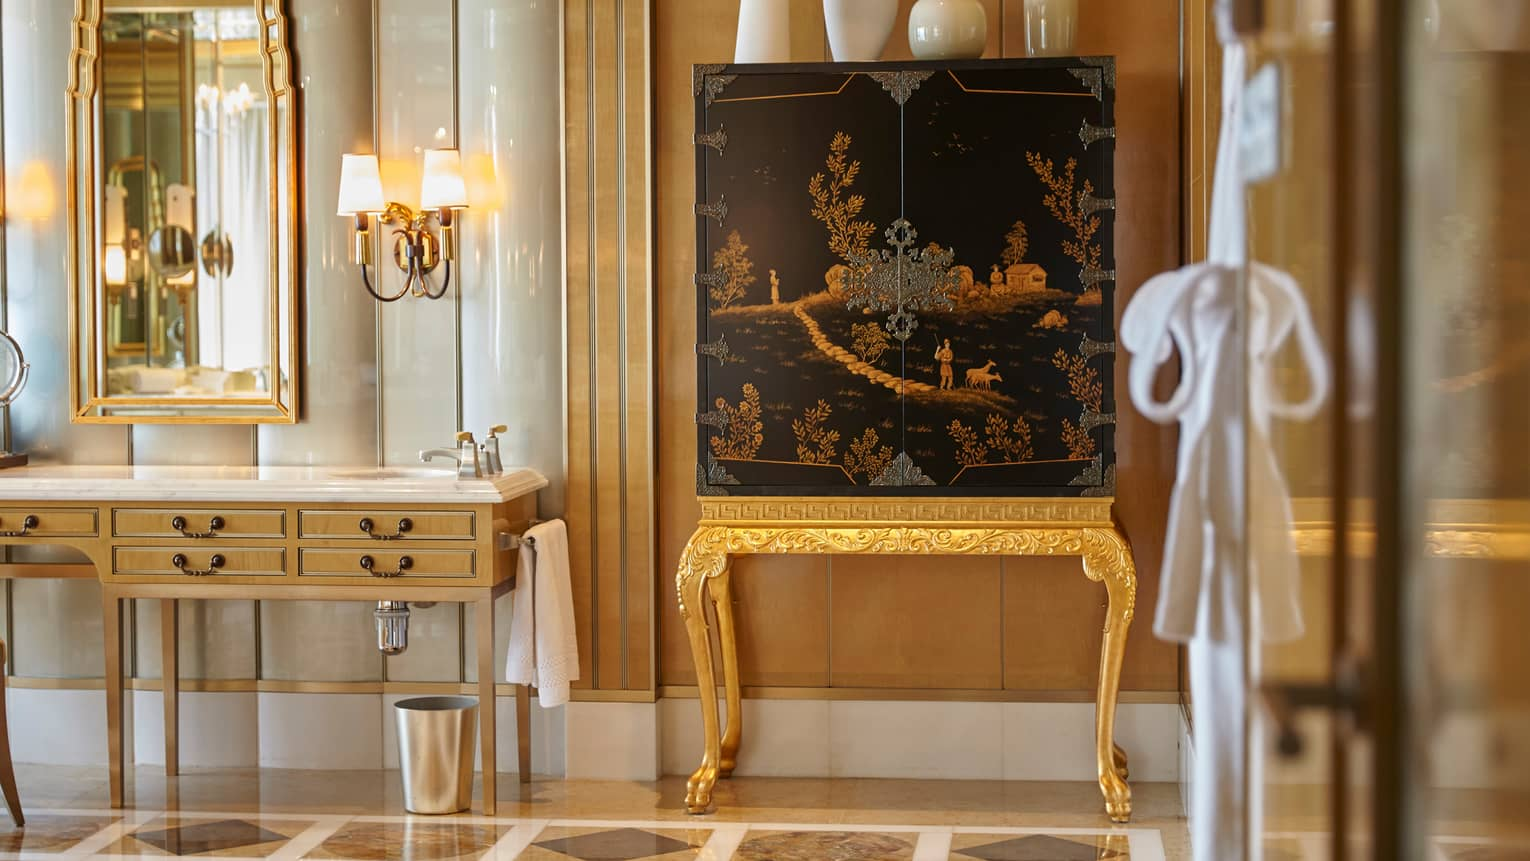 Elegant bathroom with patterned marble floors, large gold mirror over sink, chinoiserie cabinet topped with modern white vases